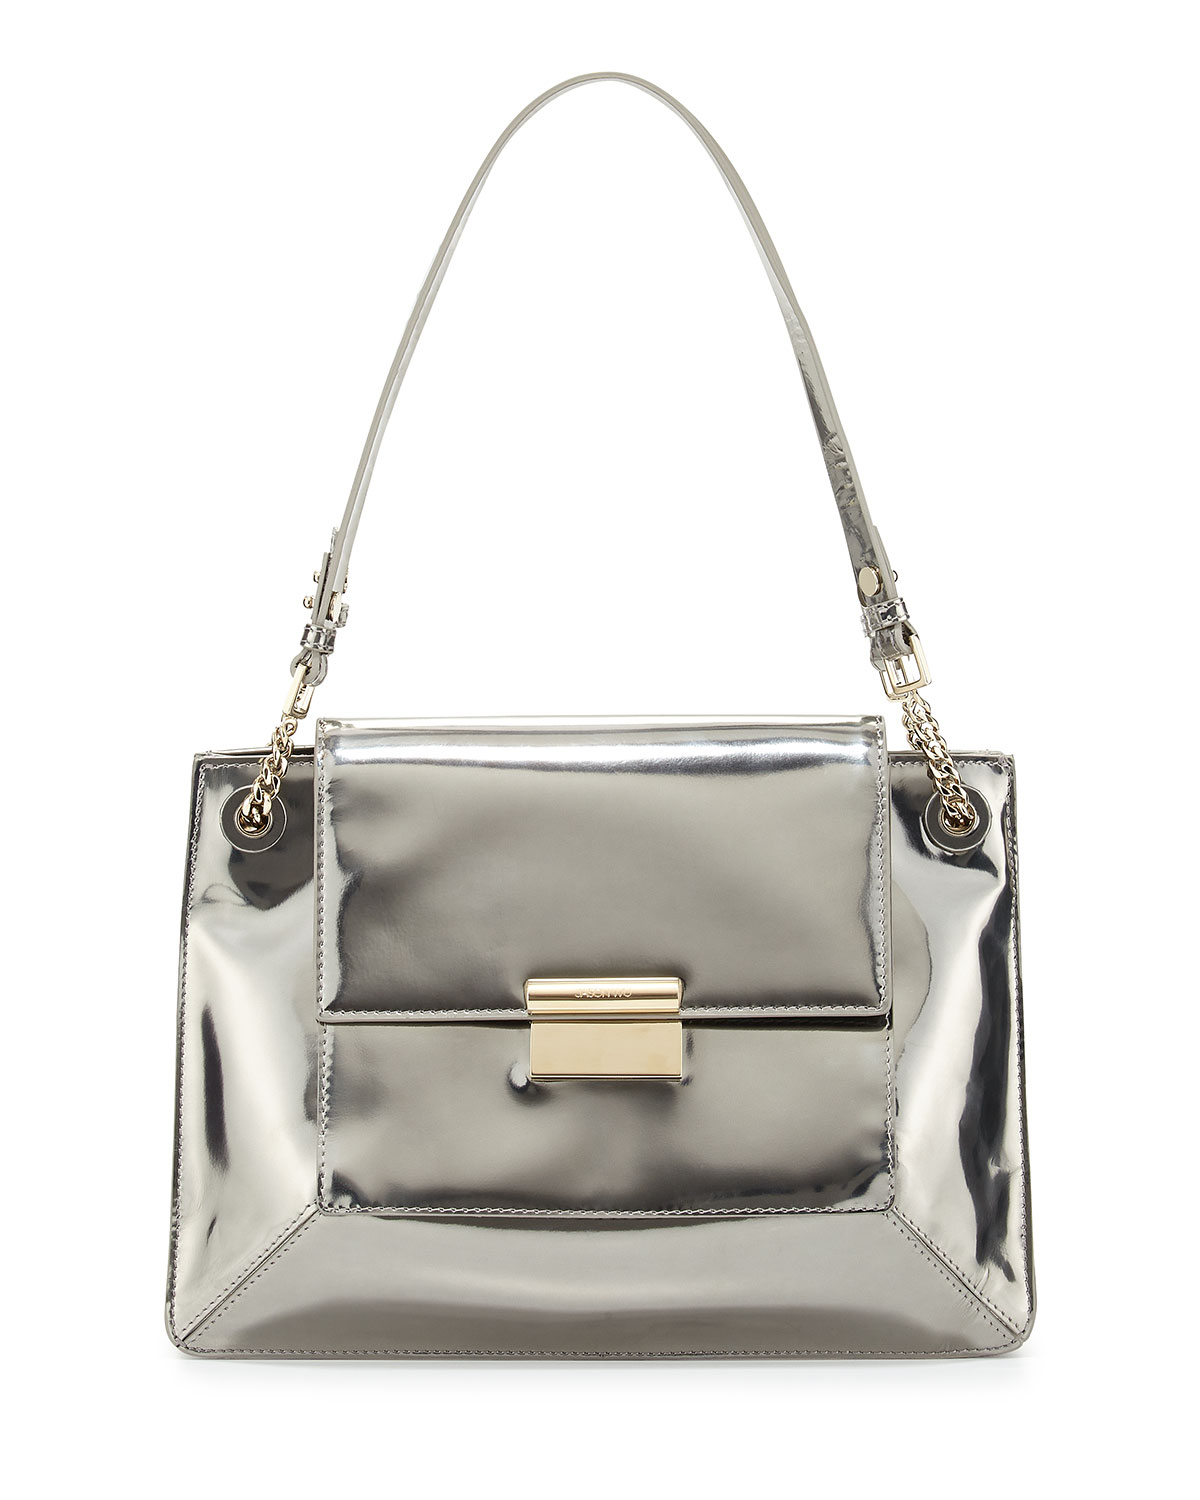 Christy Metallic Leather Shoulder Bag, Silver